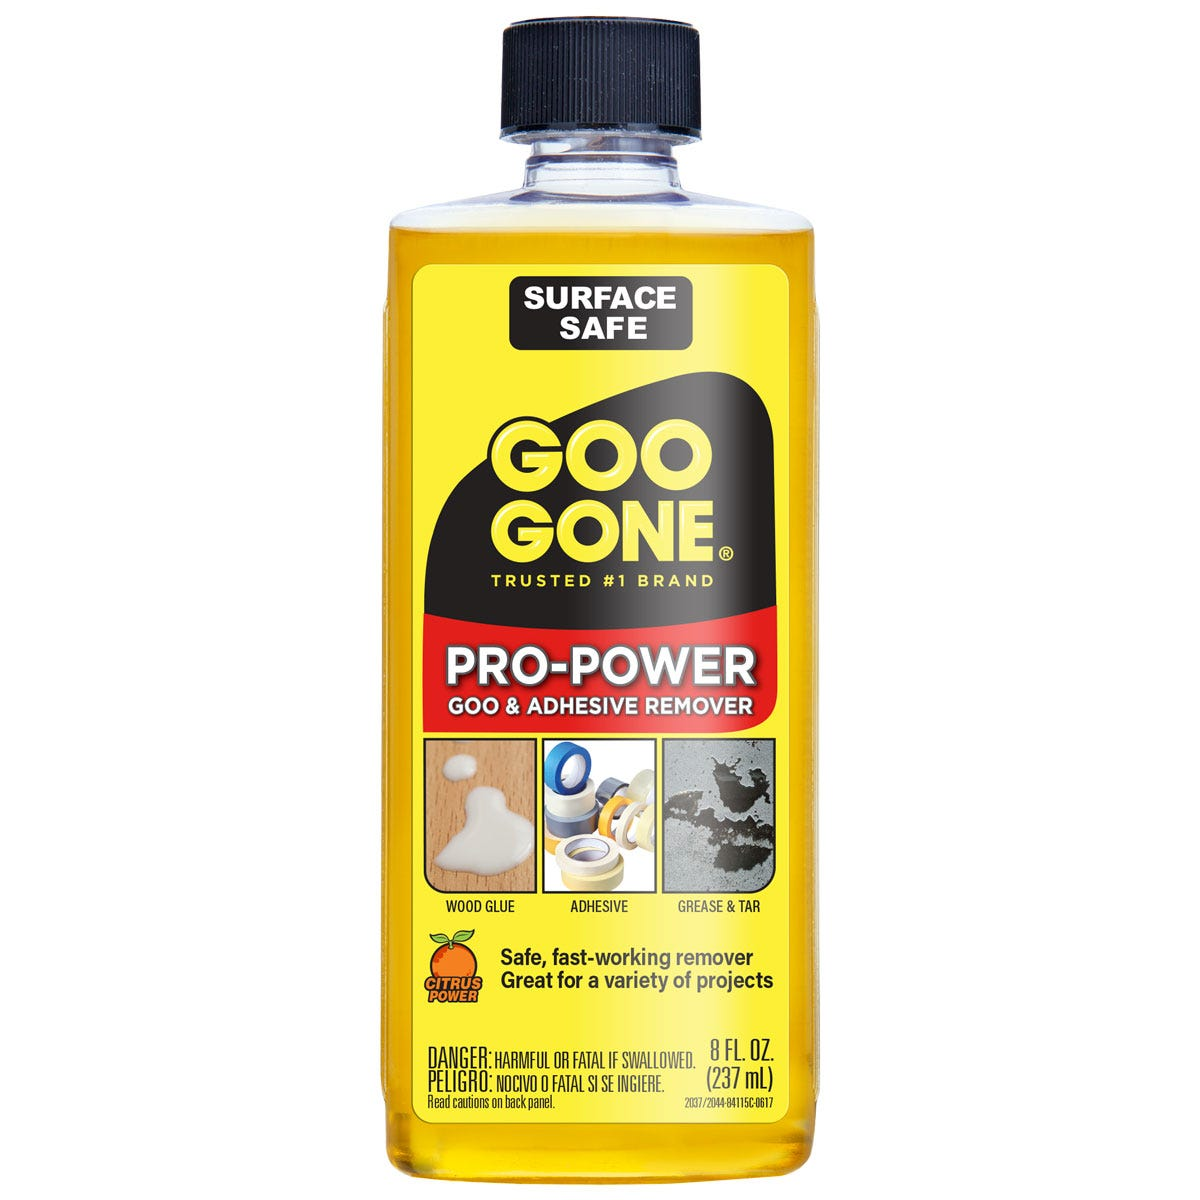 https://googone.com/media/catalog/product/p/r/pro-power-adhesive-remover_front.jpg